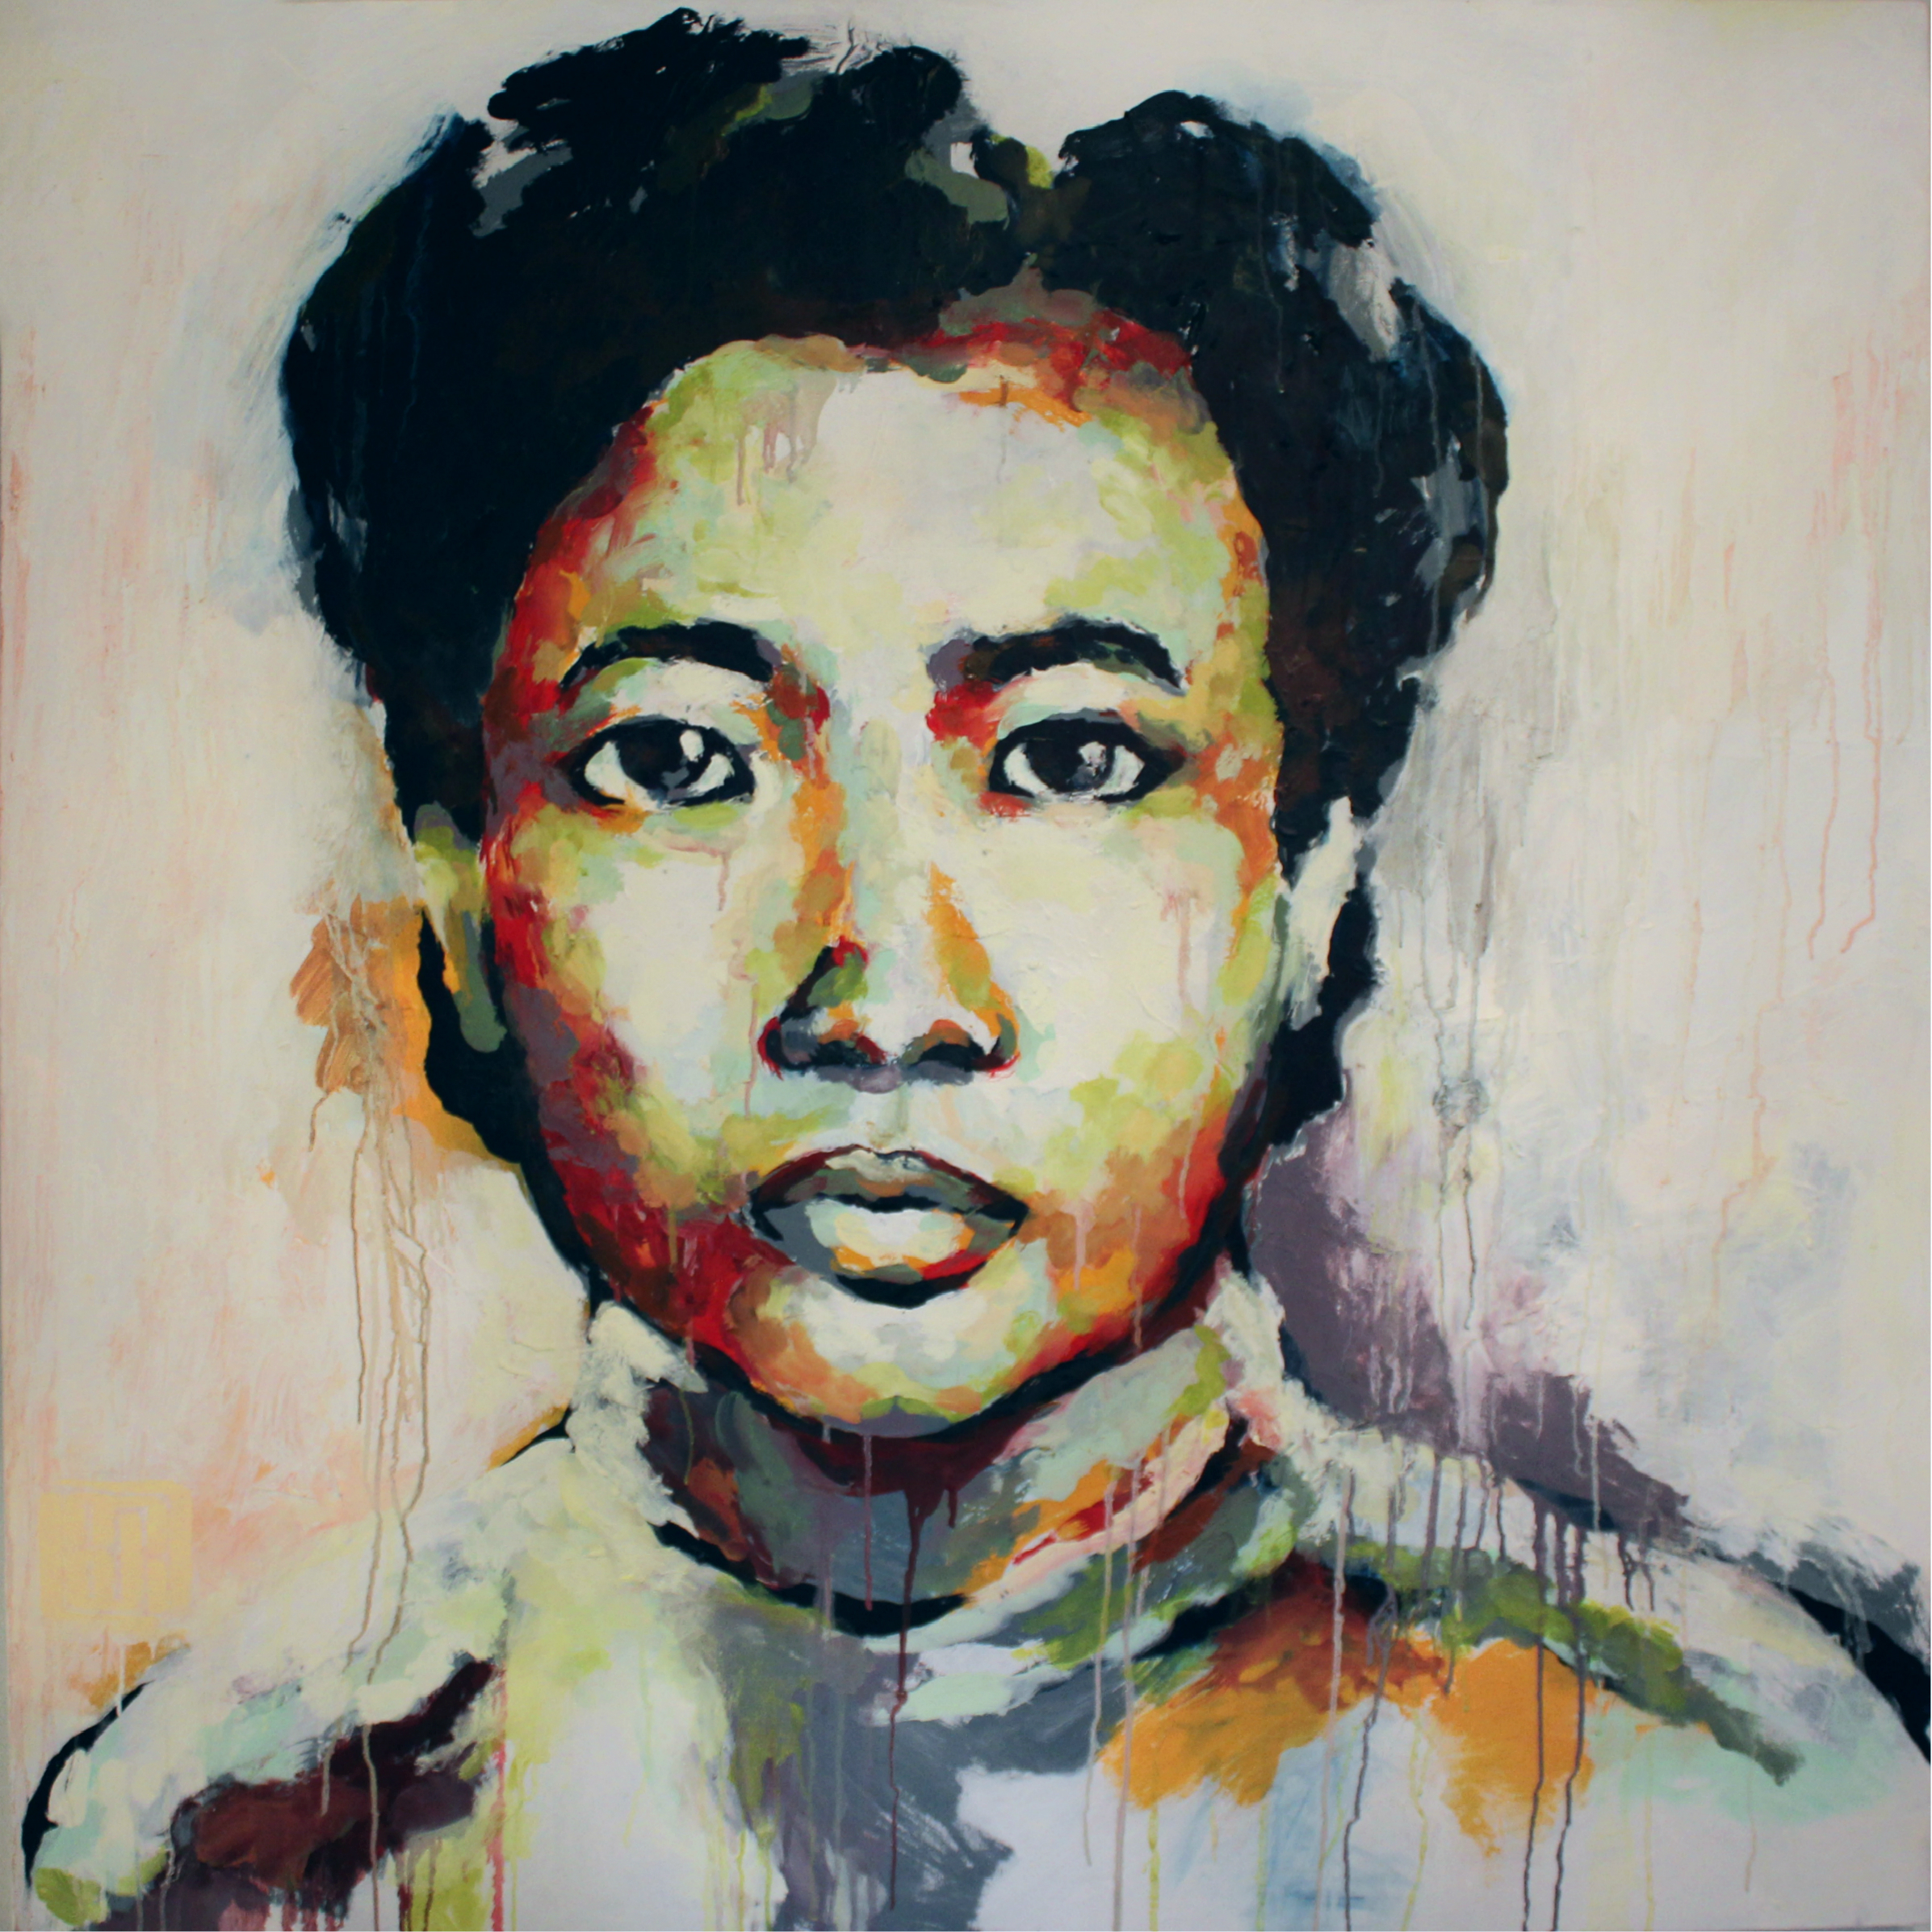 """Bà Ngoại       (Grandmother) , 2011, oil and acrylic on canvas, 48 x 48"""", Collection of Dr. Tin Do, San Francisco, CA  Often emphasizing the importance of compassion, forgiveness and empathy, my grandmother is one of the loveliest individuals I have ever known. Her unwavering faith in people, her dedication to spiritual prosperity and her love for life has encouraged me to love more deeply and to more openly pursue Truth."""